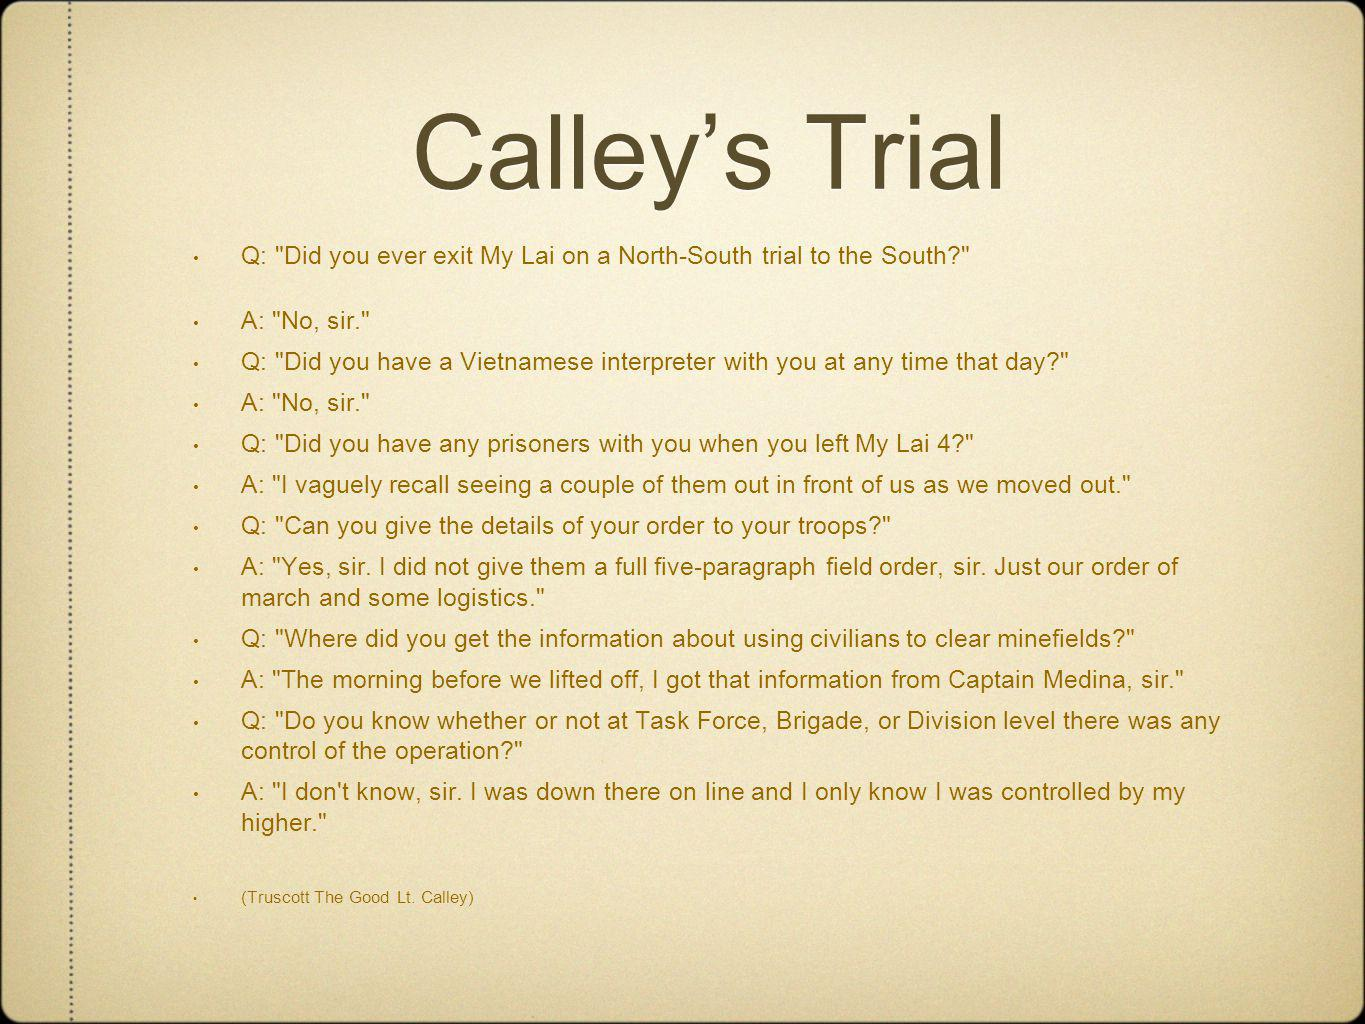 Calley's Trial Q: Did you ever exit My Lai on a North-South trial to the South A: No, sir.